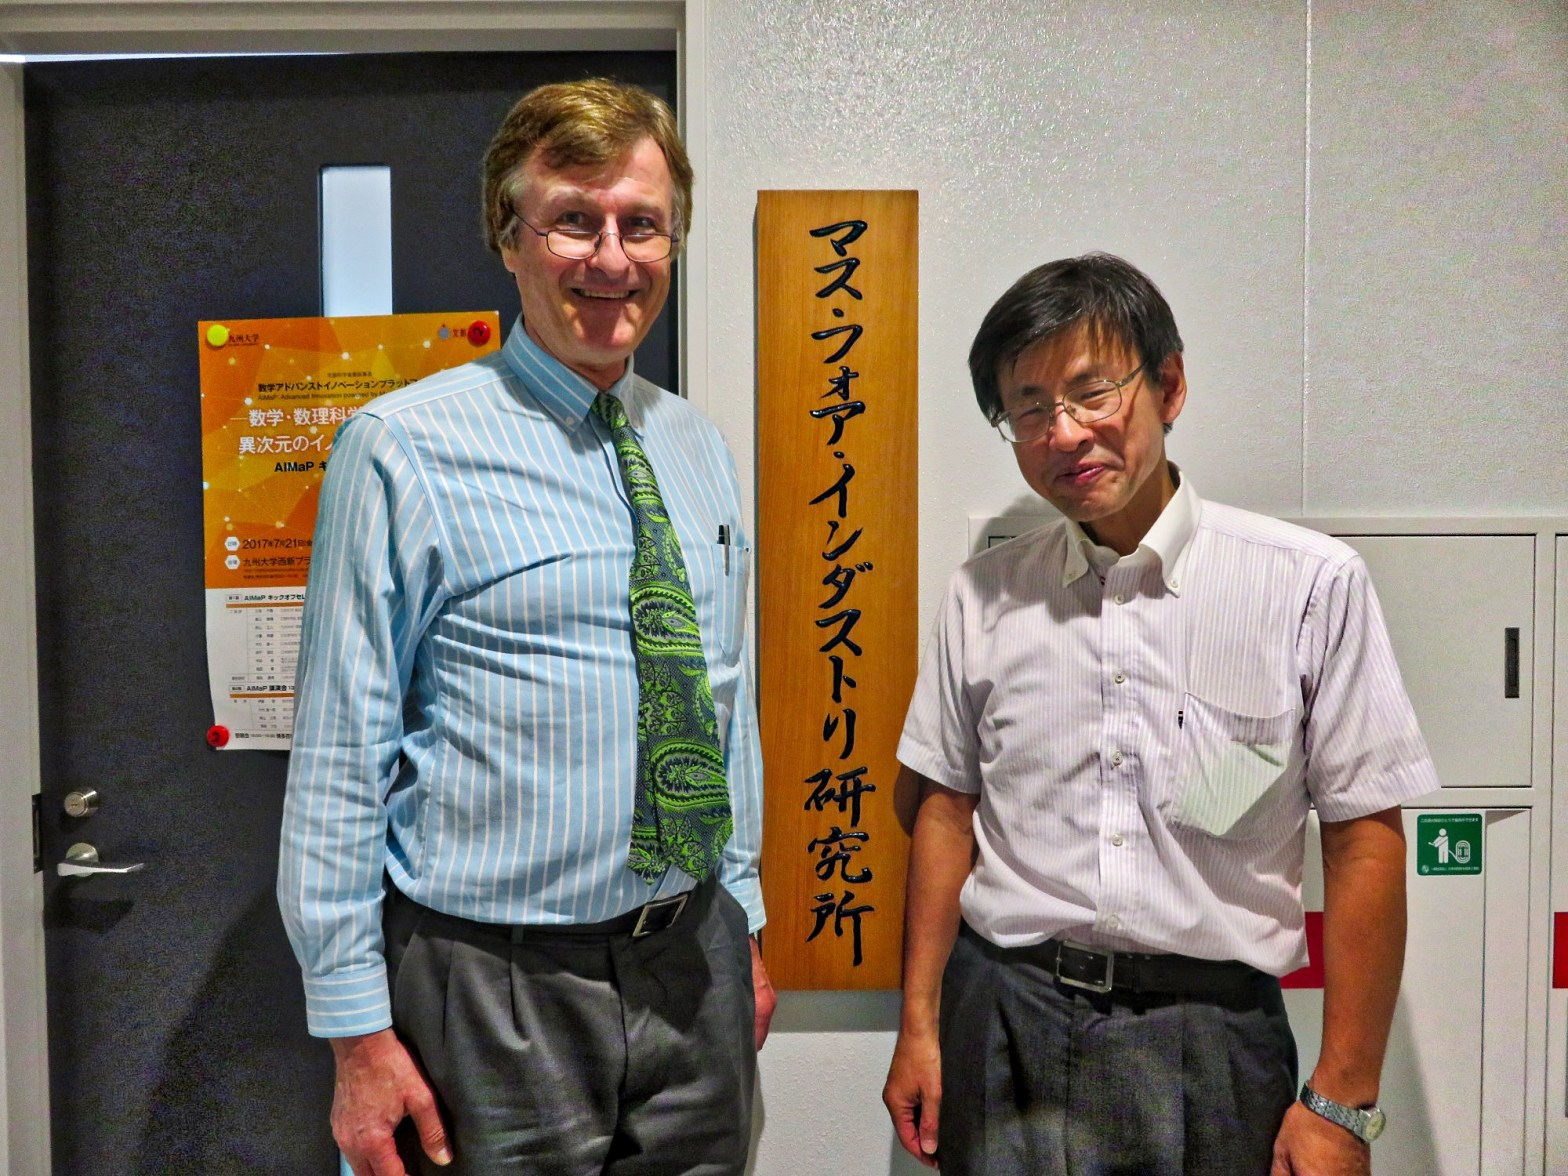 Mathematics for Industry Institute Director Yasuhide Fukumoto and Gerhard Fasol